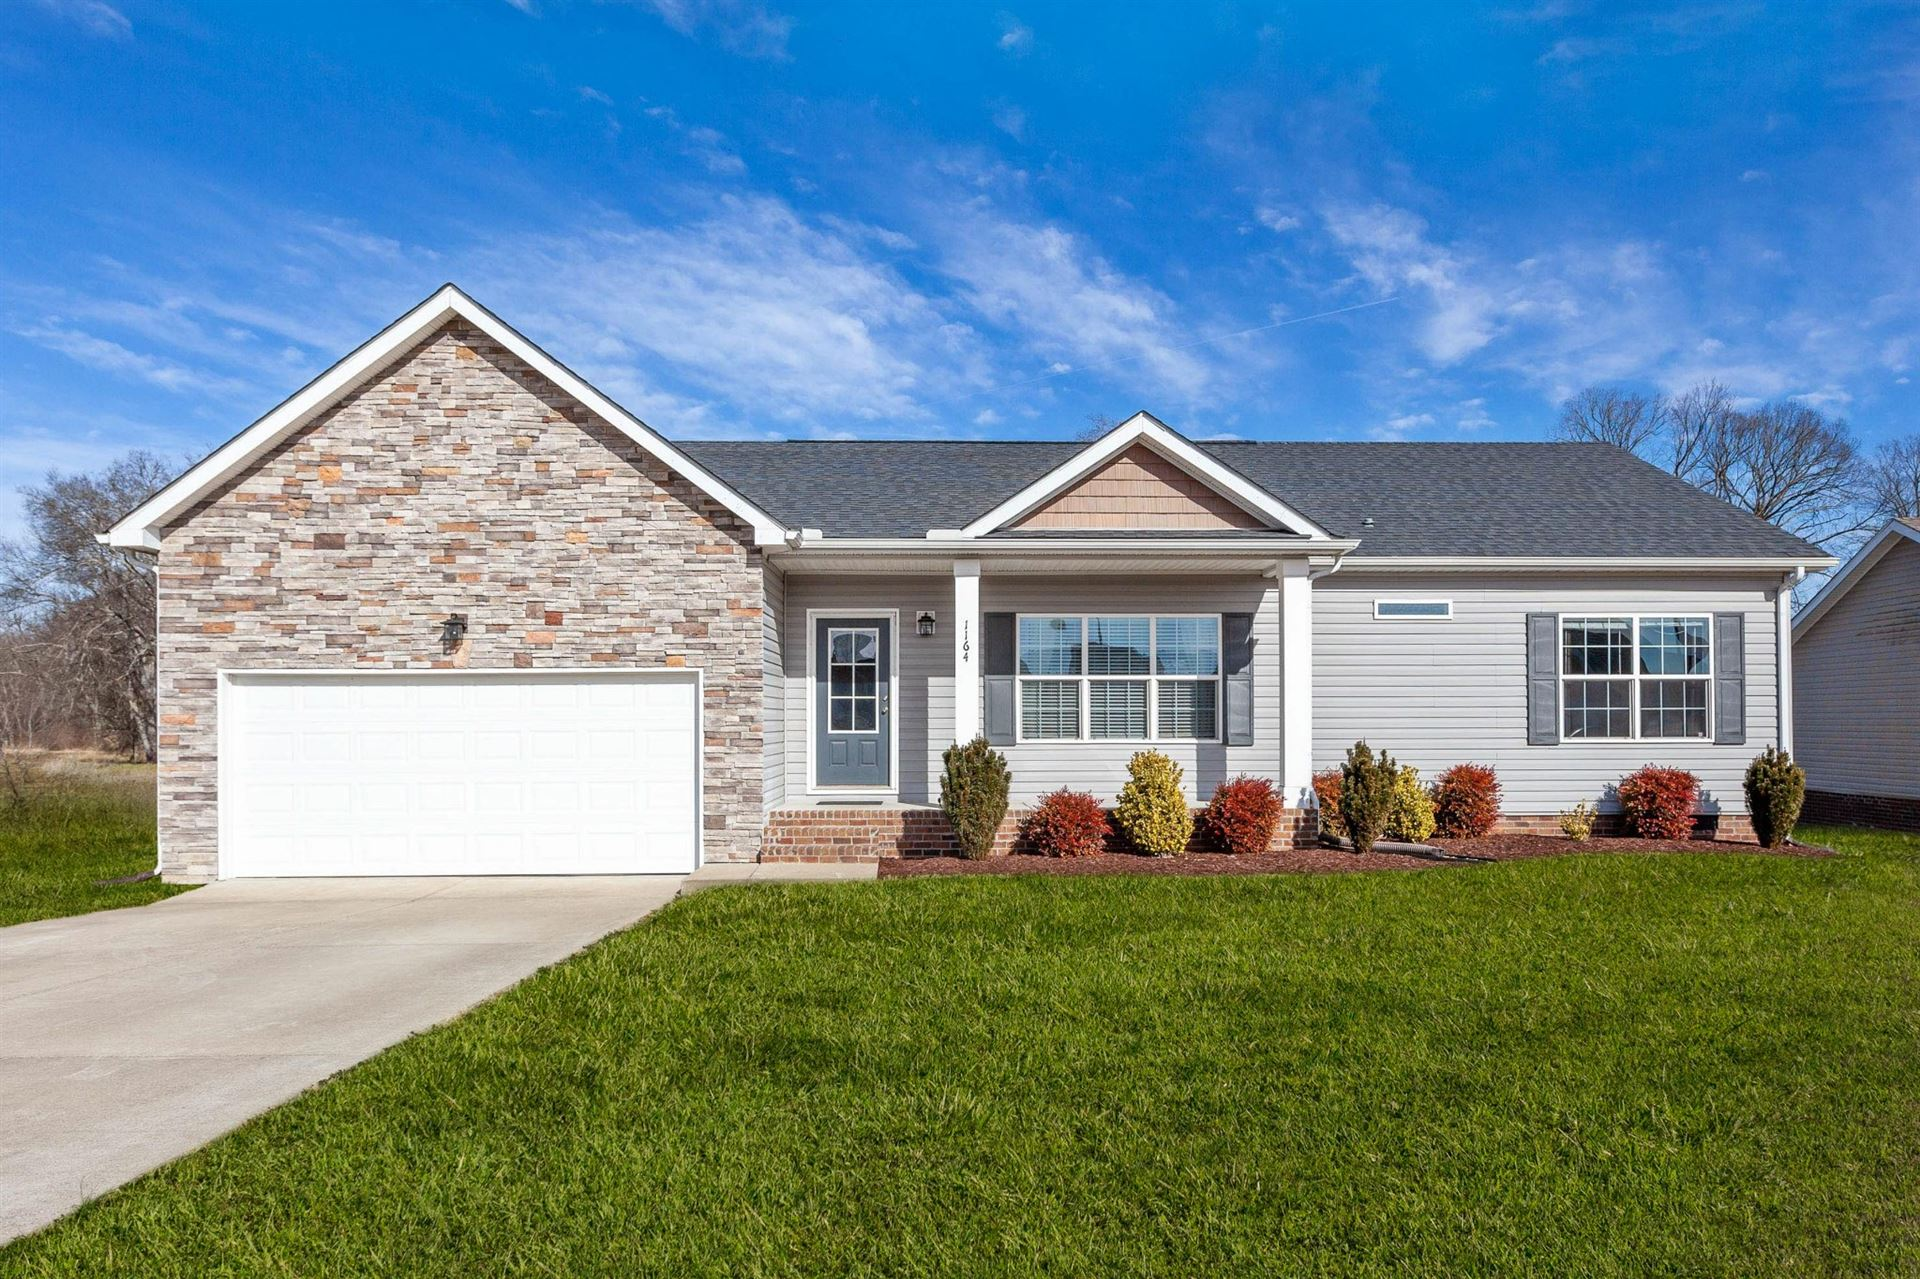 Photo of 1164 Wrights Mill Rd, Spring Hill, TN 37174 (MLS # 2222238)